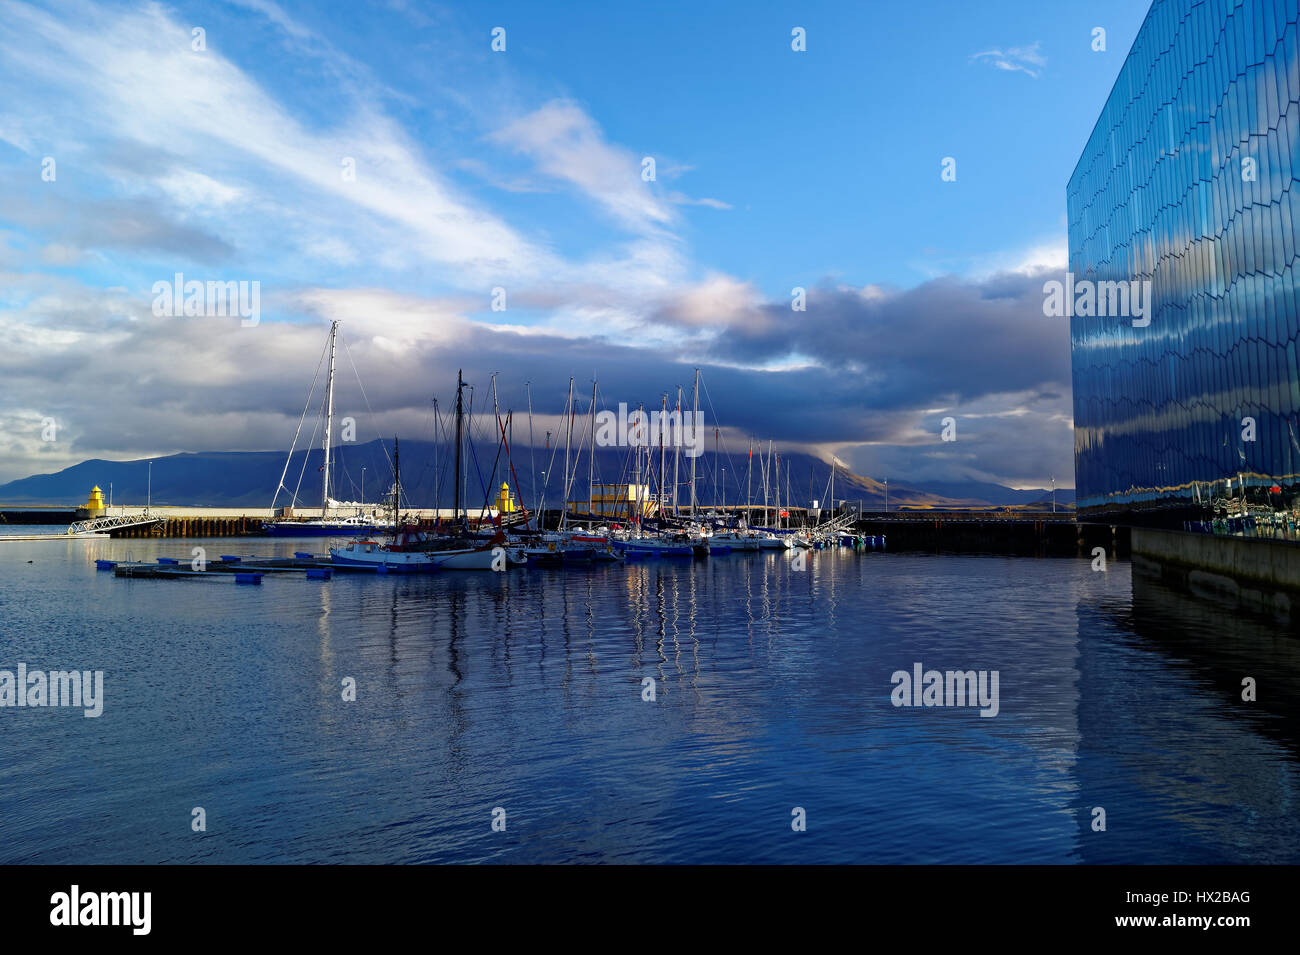 Port of Reykjavik. The sky is reflected in the water. Yachts in the port of Reykjavik - Stock Image